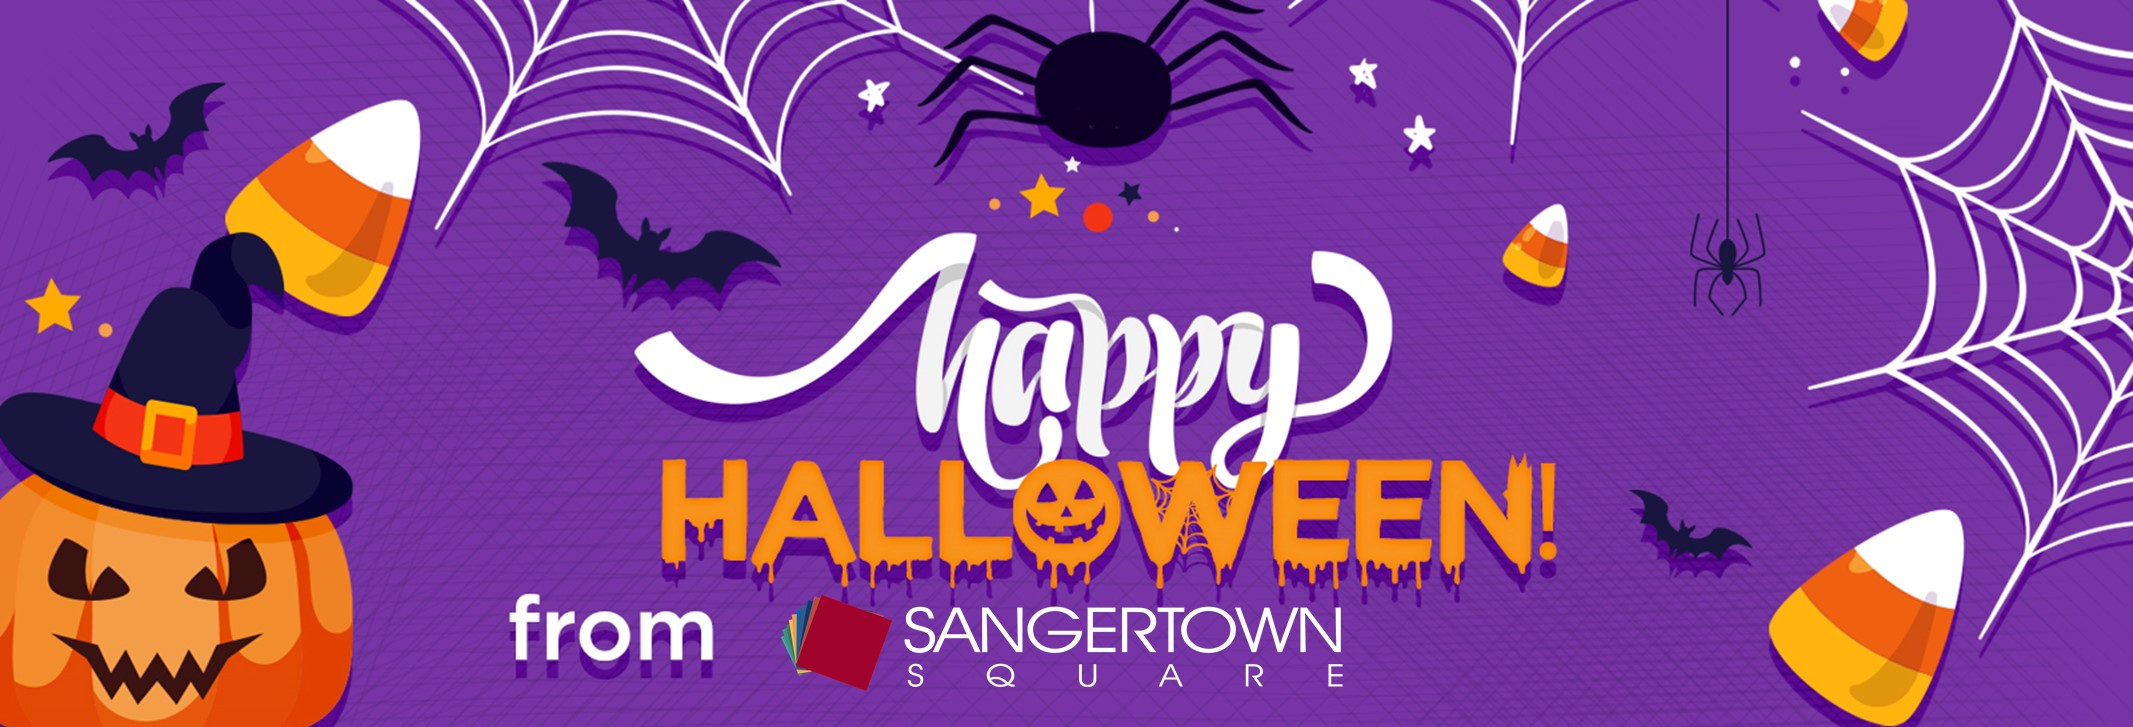 Happy Halloween from Sangertown